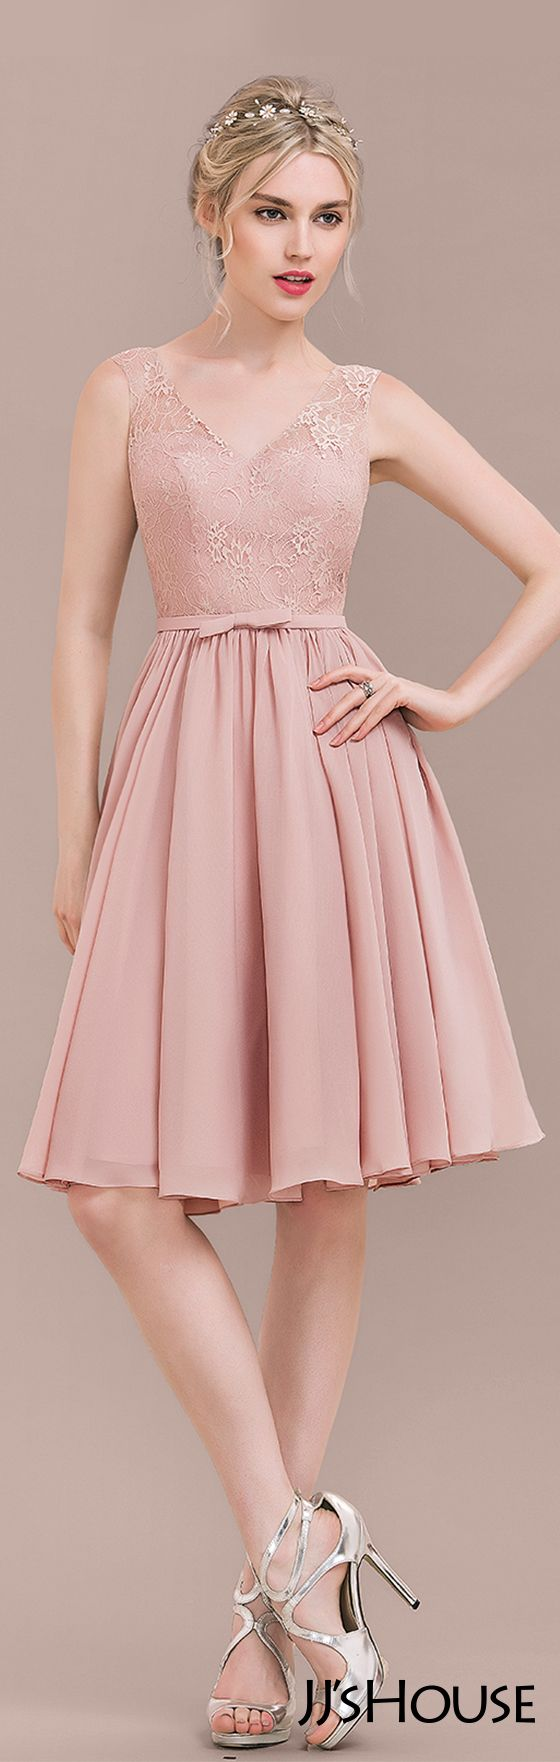 JJsHouse #Bridesmaid | Vestidos | Pinterest | Vestiditos, Vestidos ...